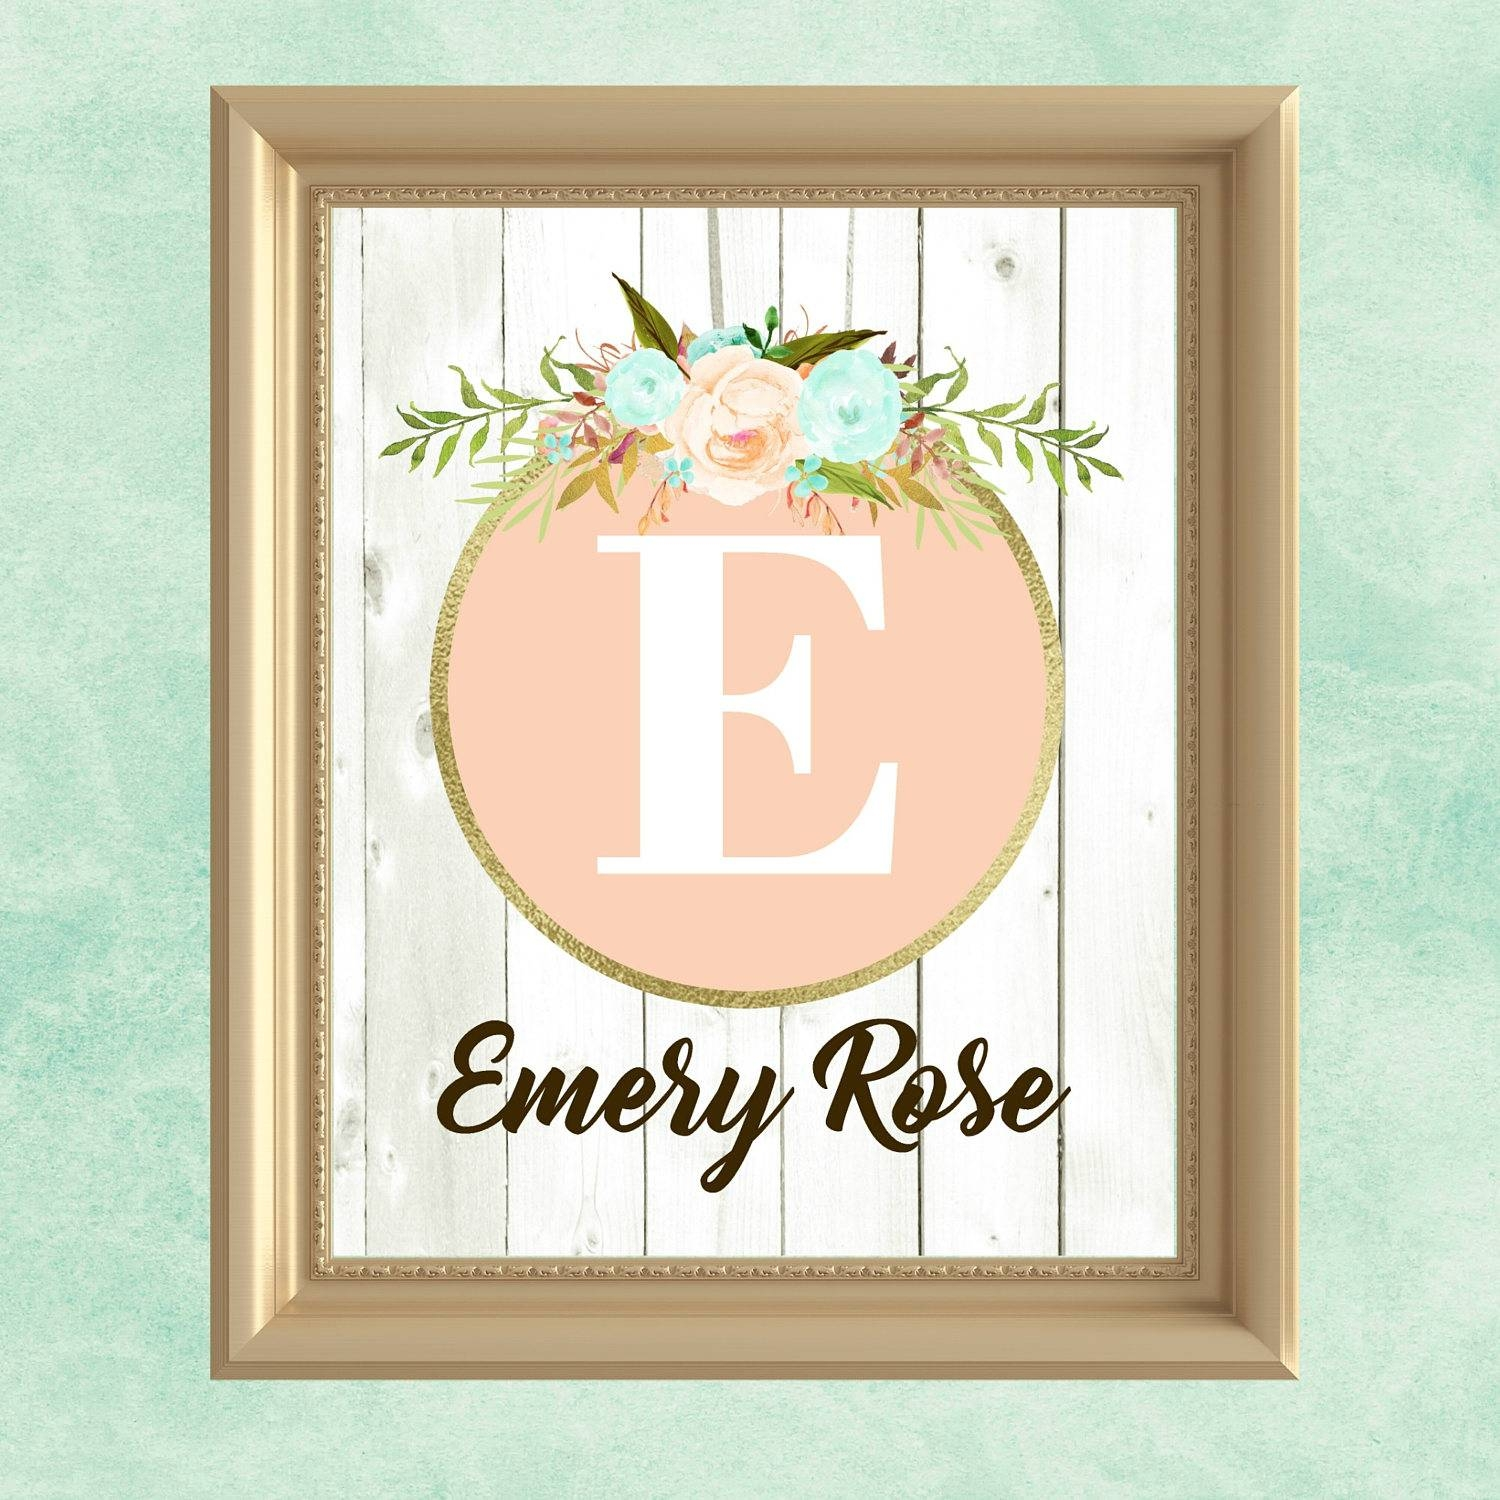 Baby Girl Nursery Wall Art Peach Mint Gold Nursery Decor Intended For Recent Personalized Nursery Wall Art (View 3 of 20)